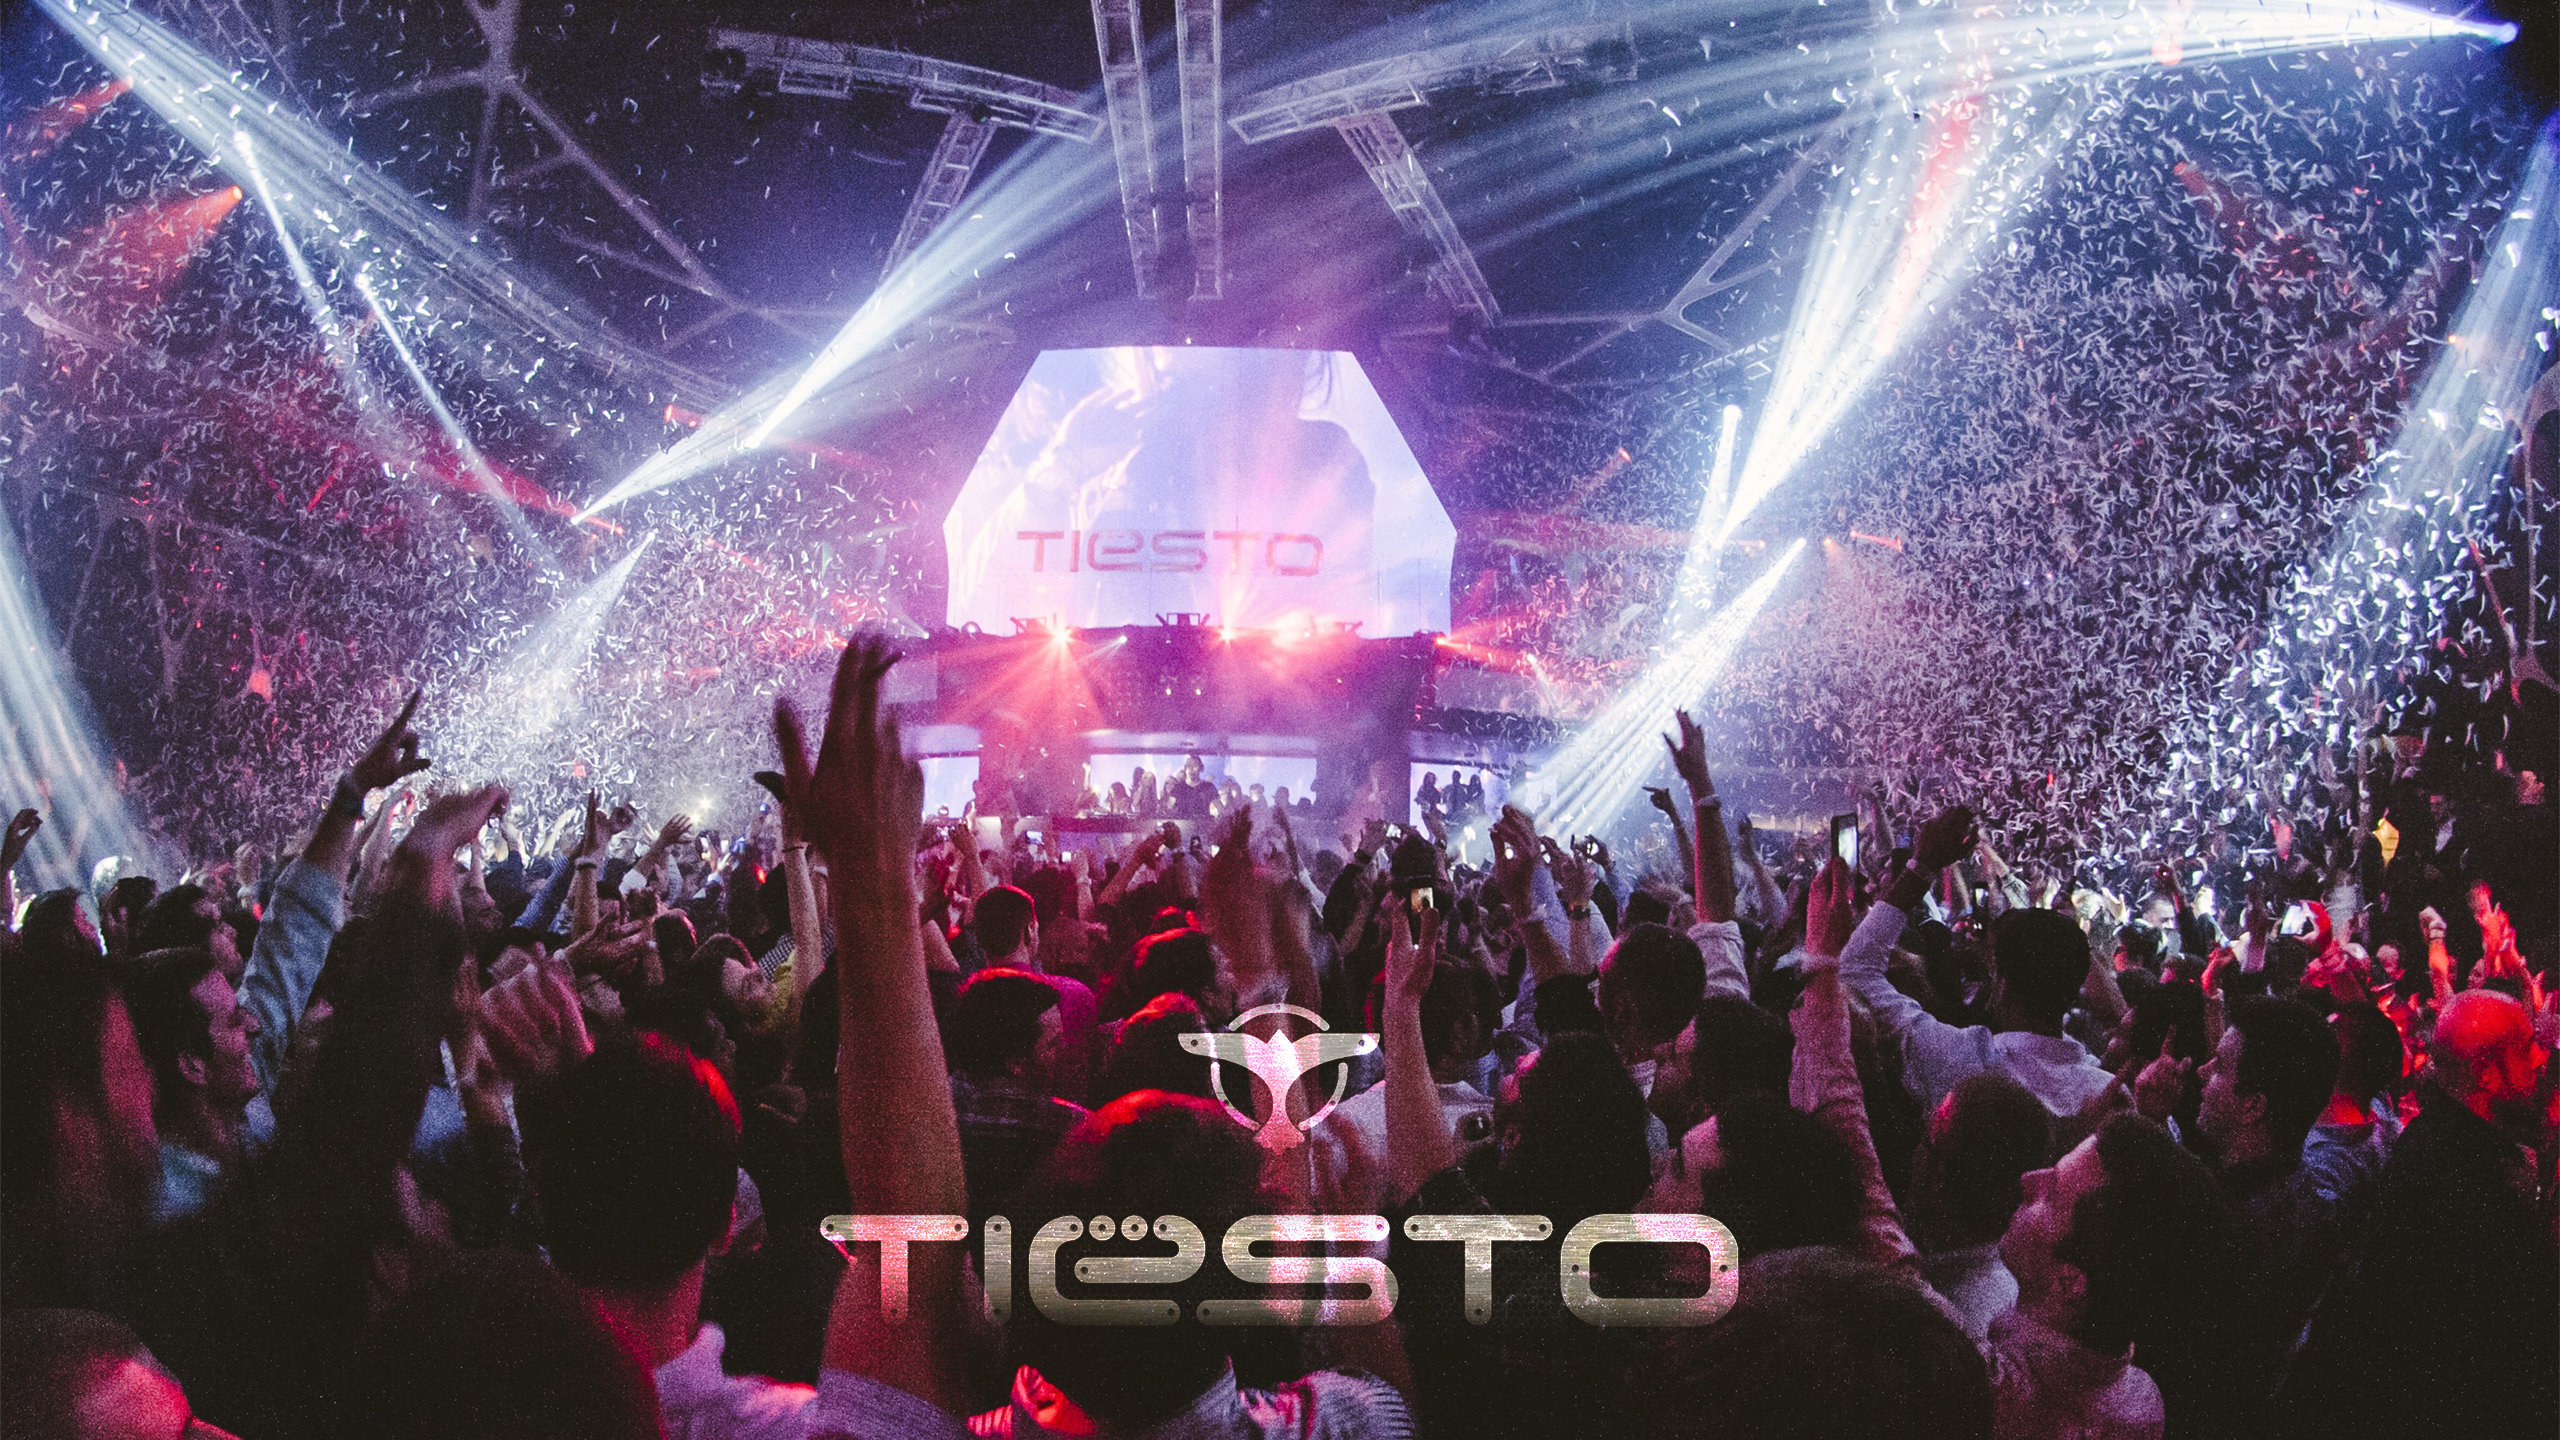 Tiesto Concert Wallpaper